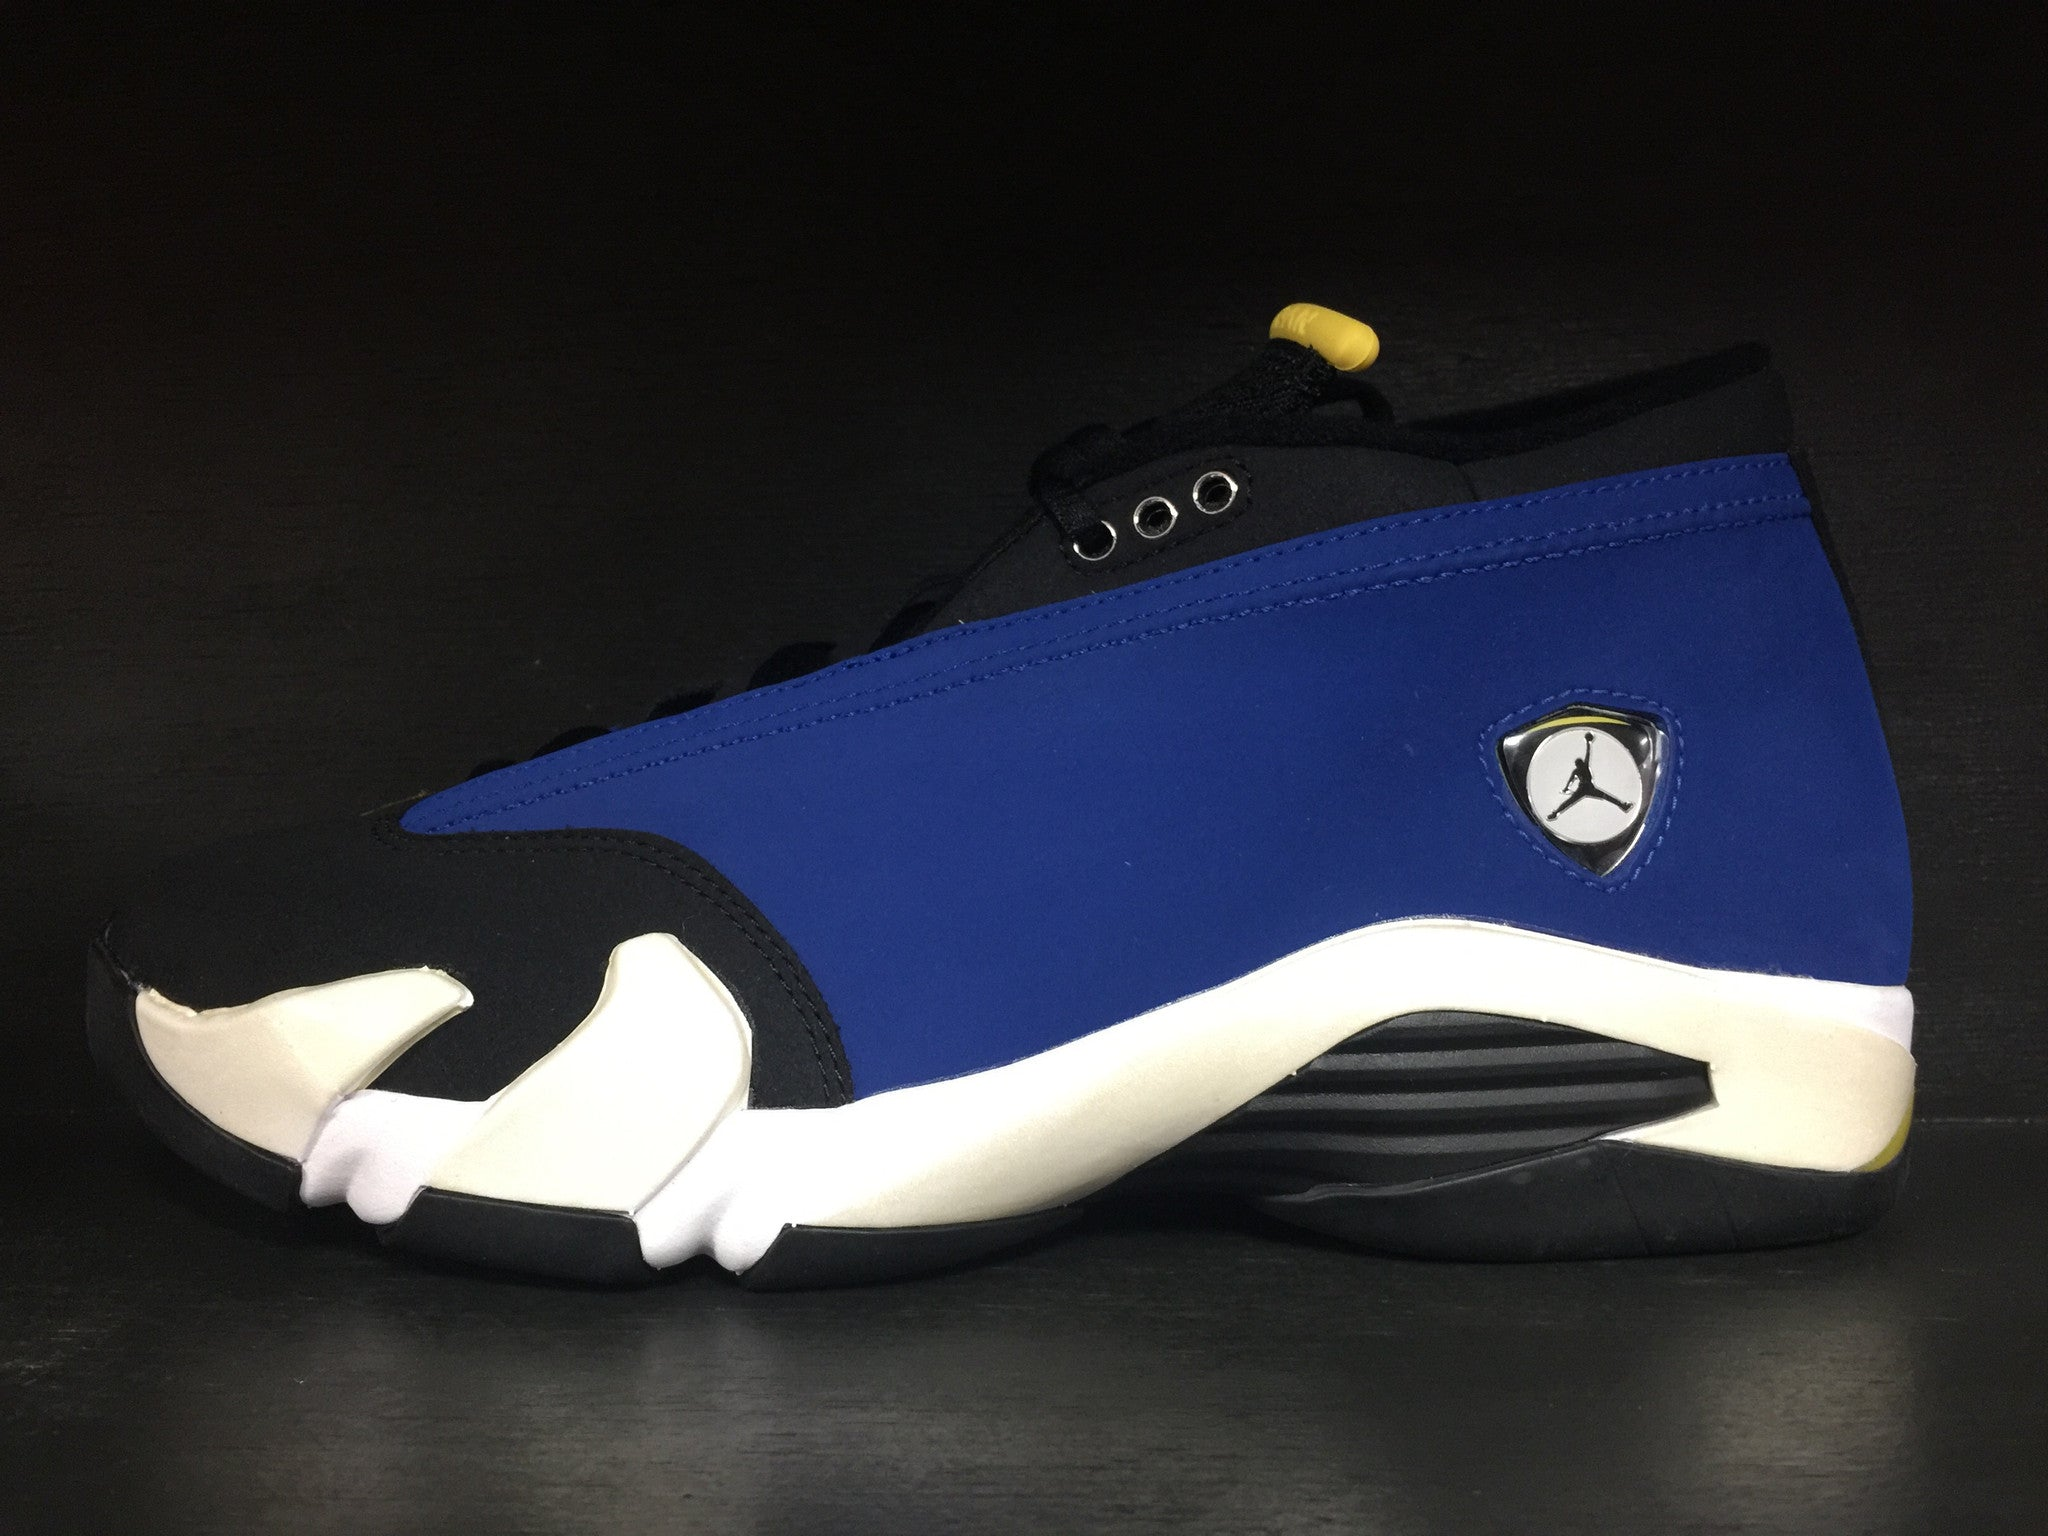 Air Jordan 14 Retro Low 'Varsity Royal' 'Laney'